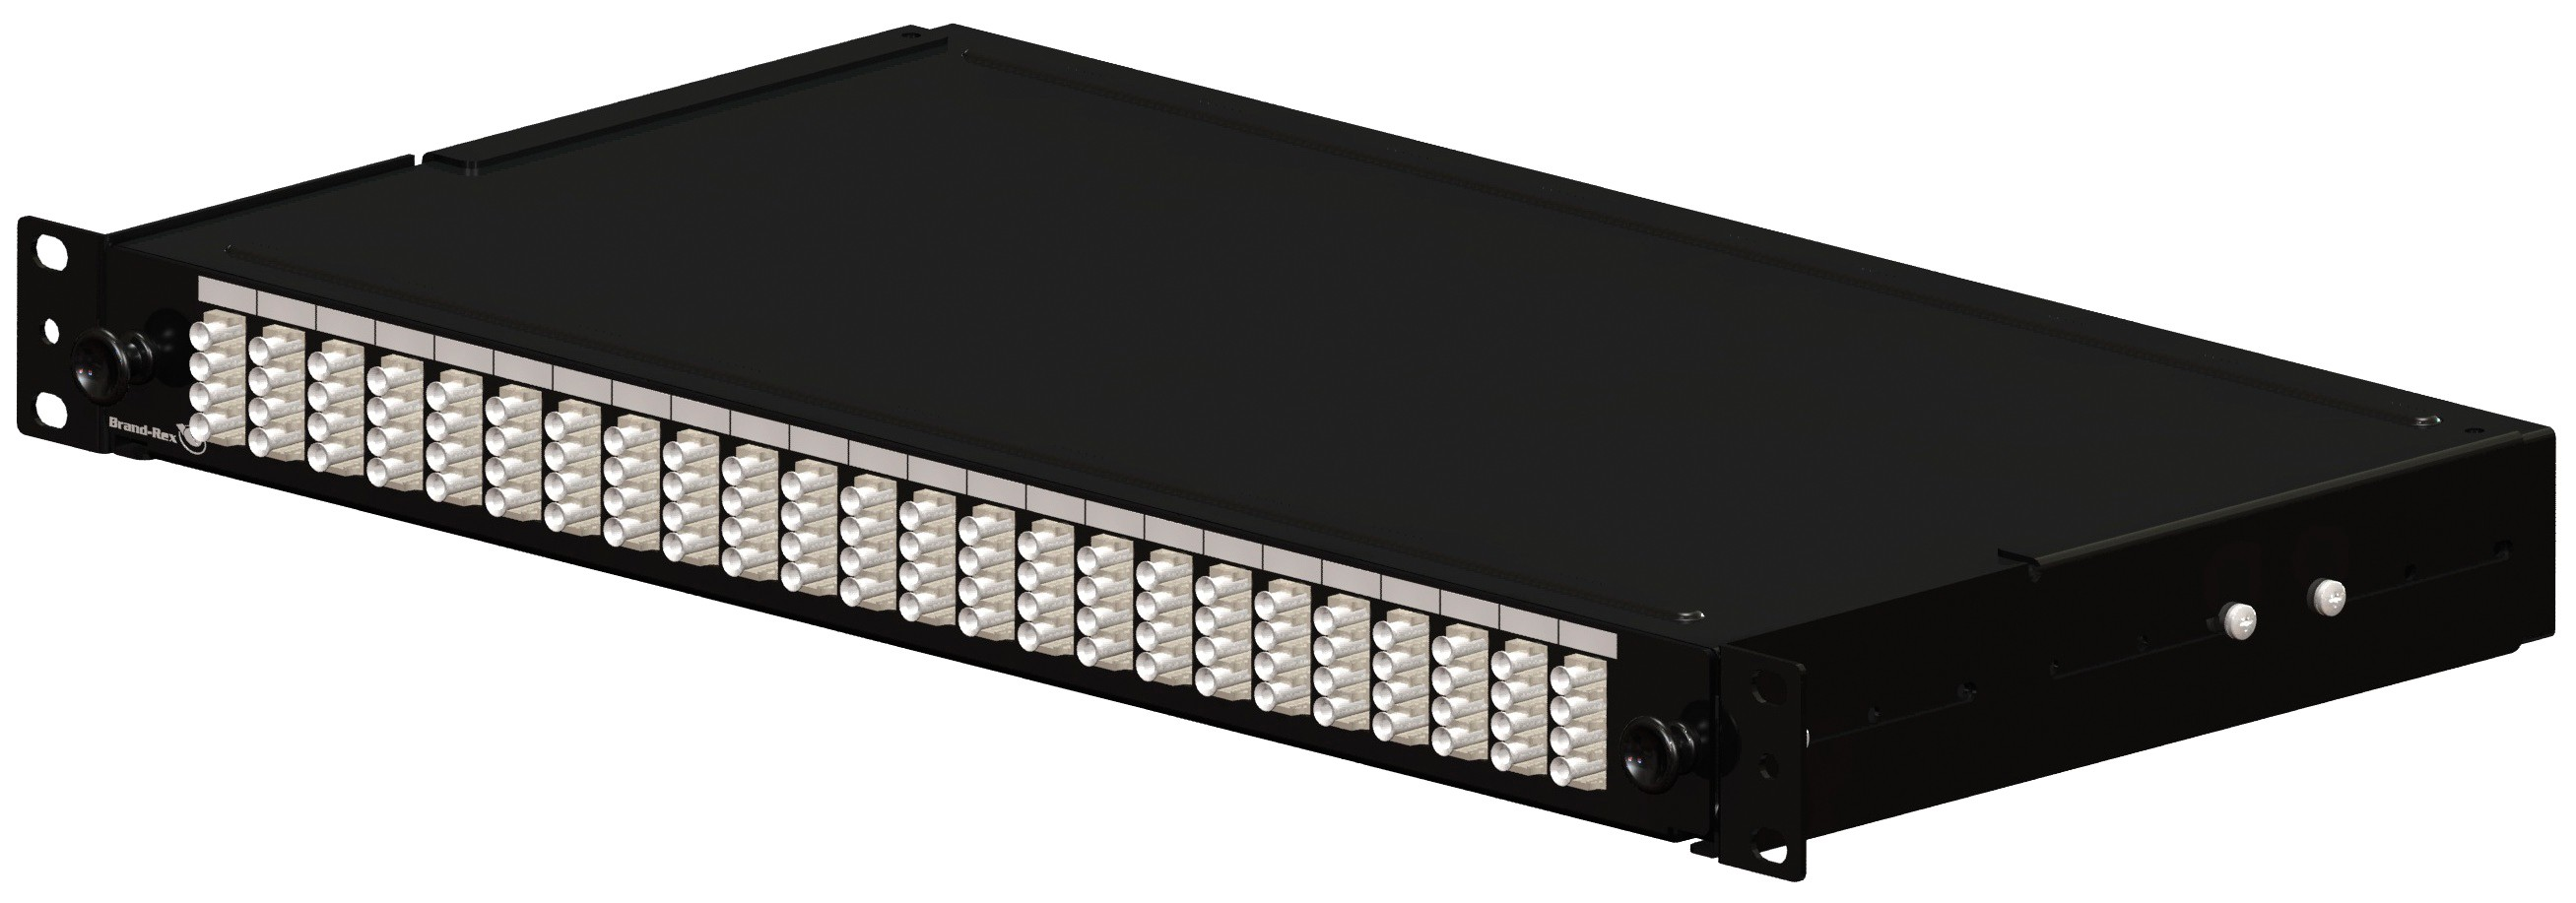 Brand-Rex Optical Panel loaded with 4 ST Singlemode adapters